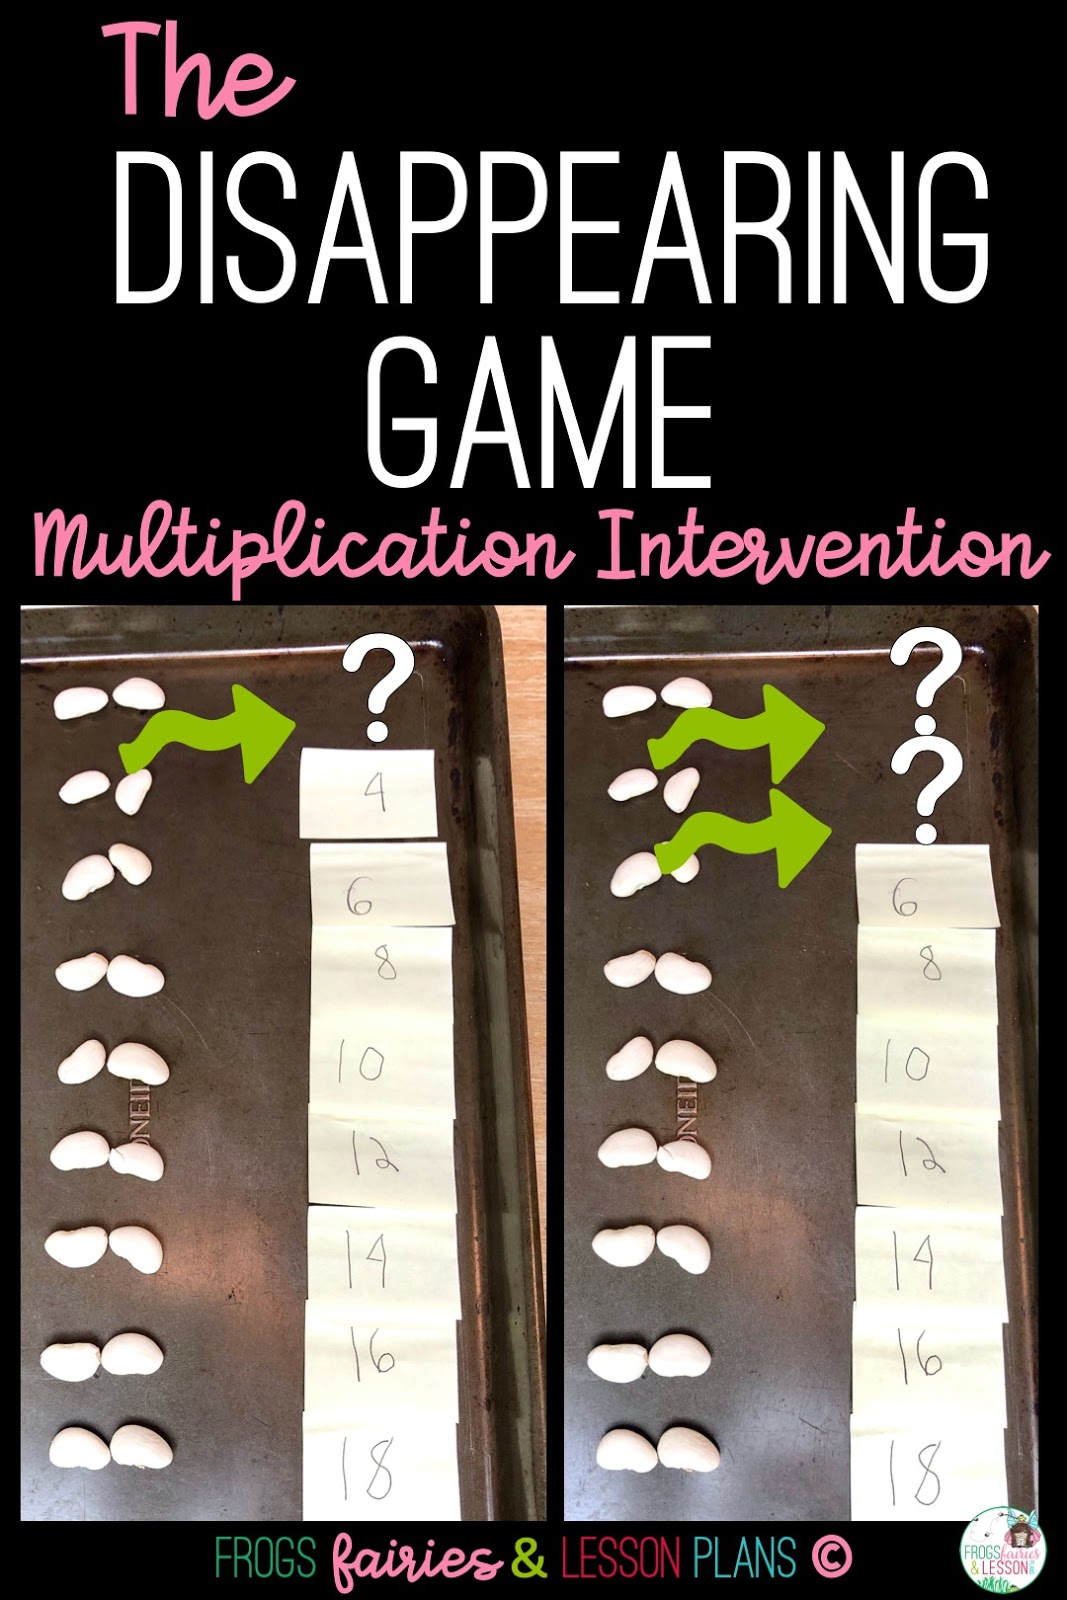 Multiplication activities and ideas